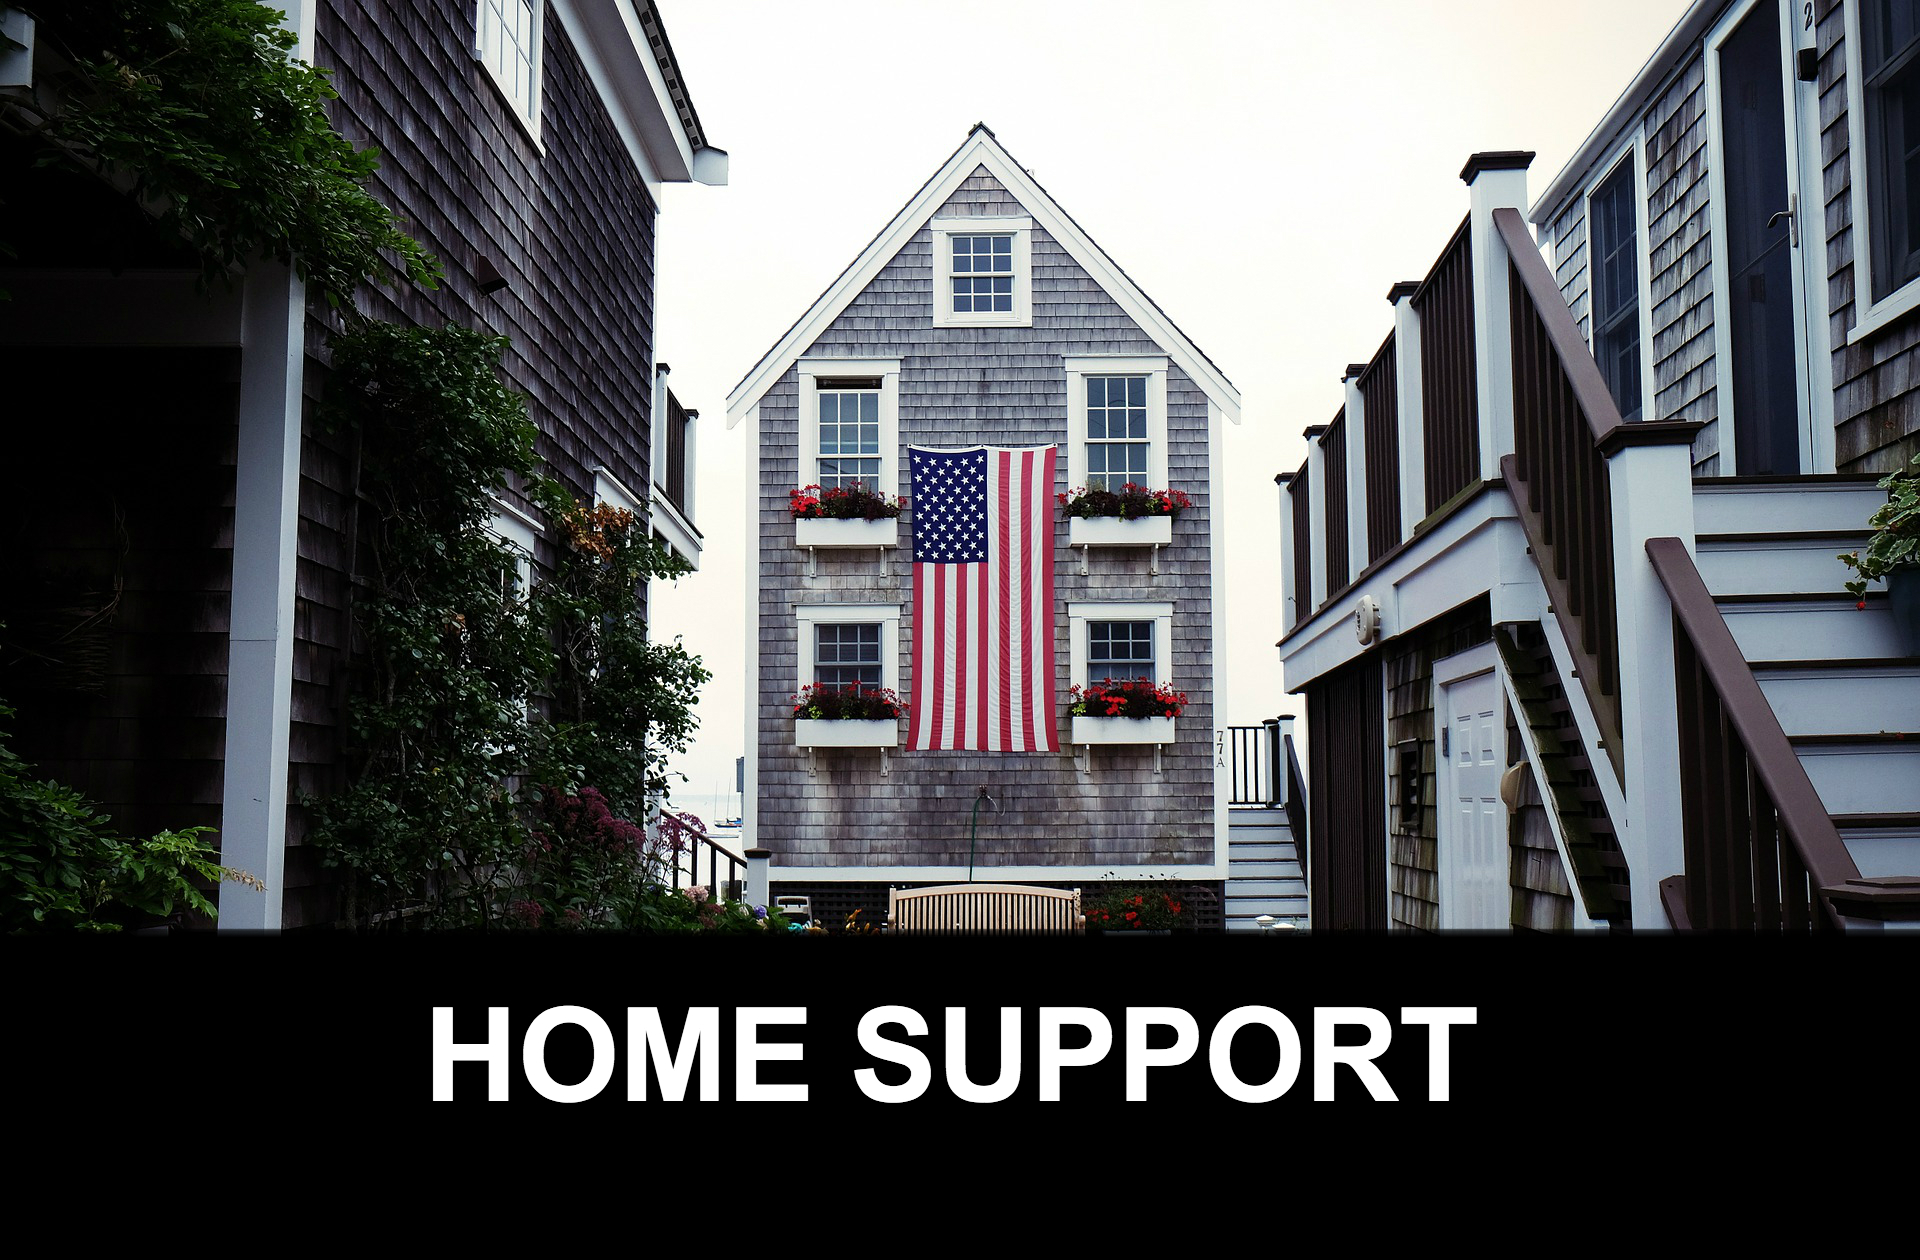 HOME SUPPORT